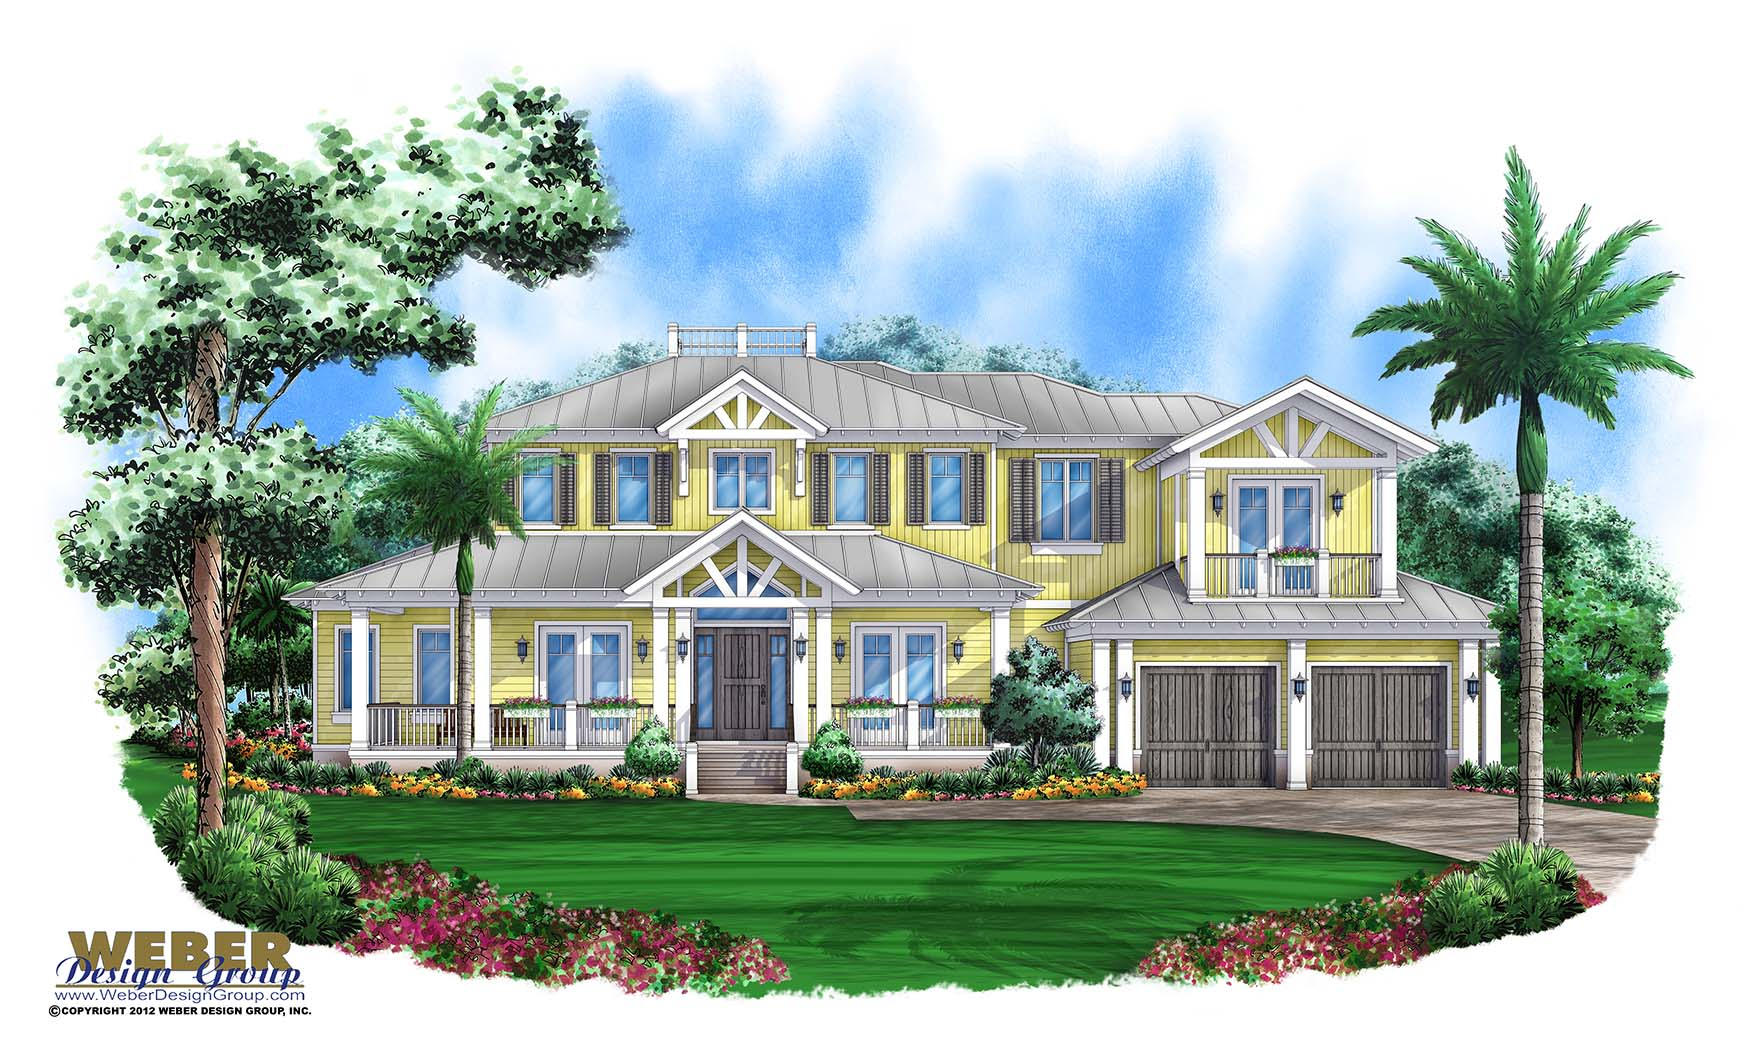 Olde florida house plan arbordale house plan weber for Florida house designs